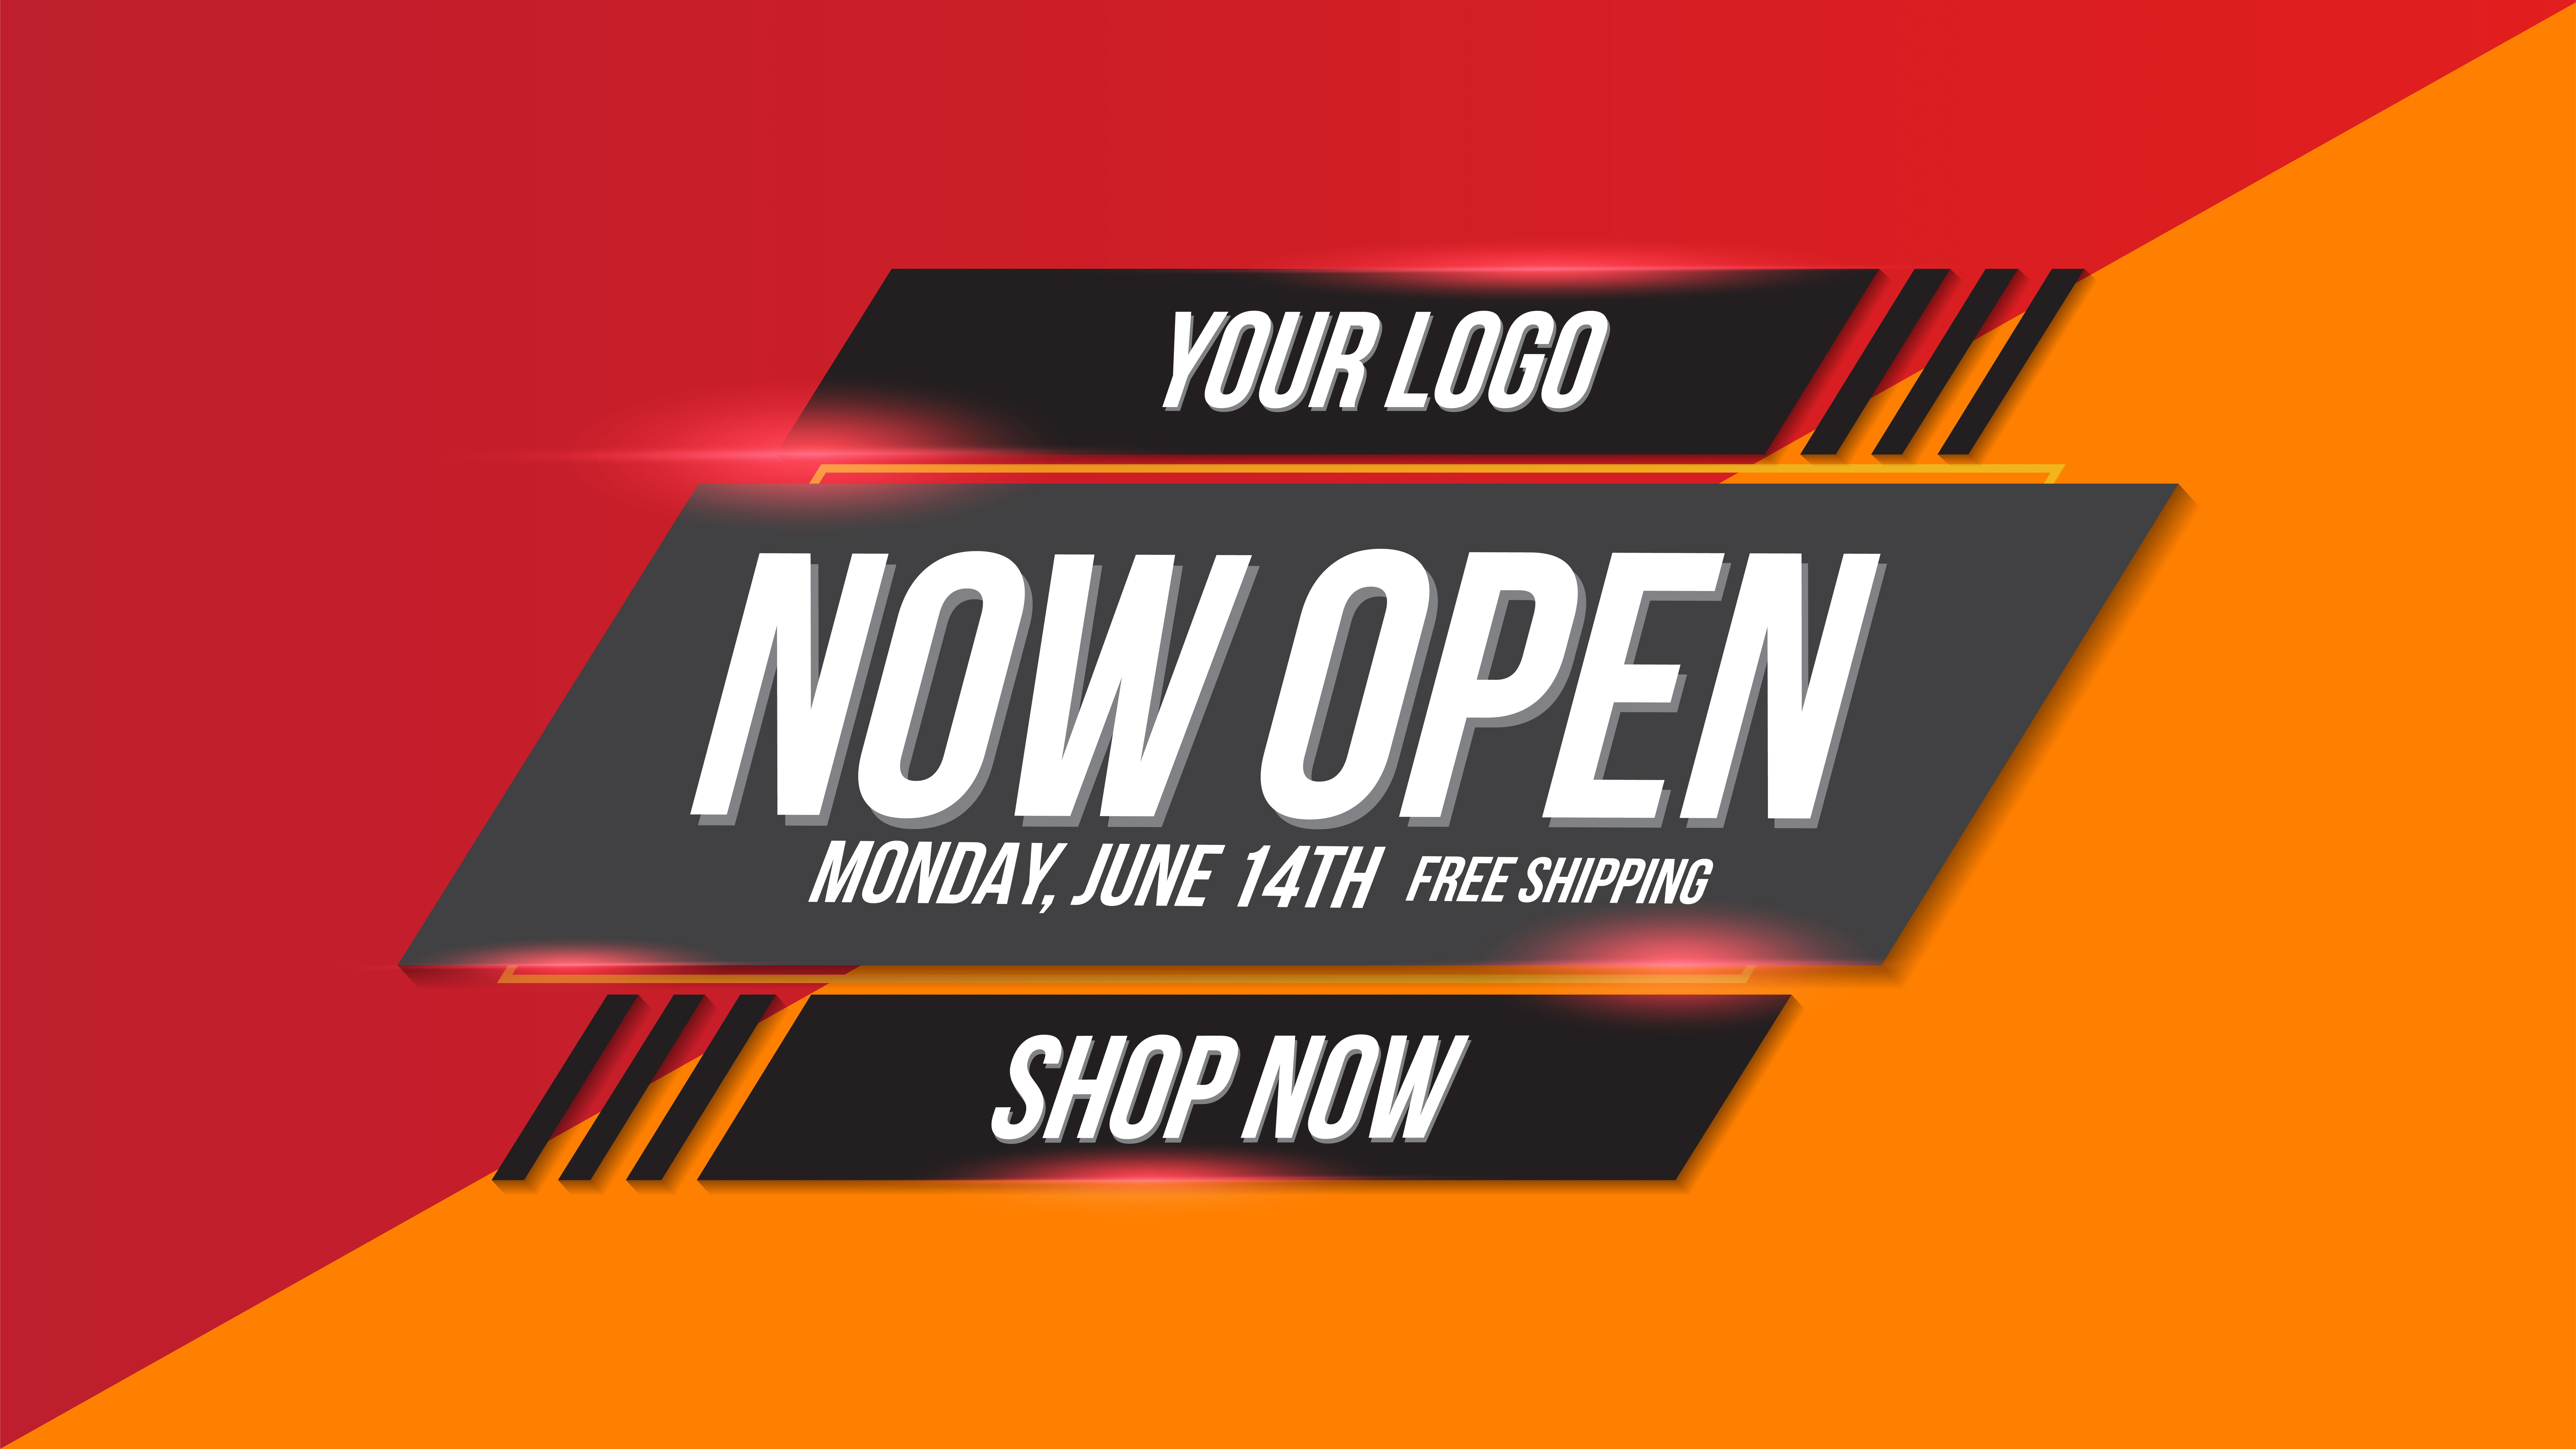 Now Open Shop Or New Store Red And Orange Color Sign On Black Background Template Design For Opening Event Can Be Banner Template Design Orange Color Poster On